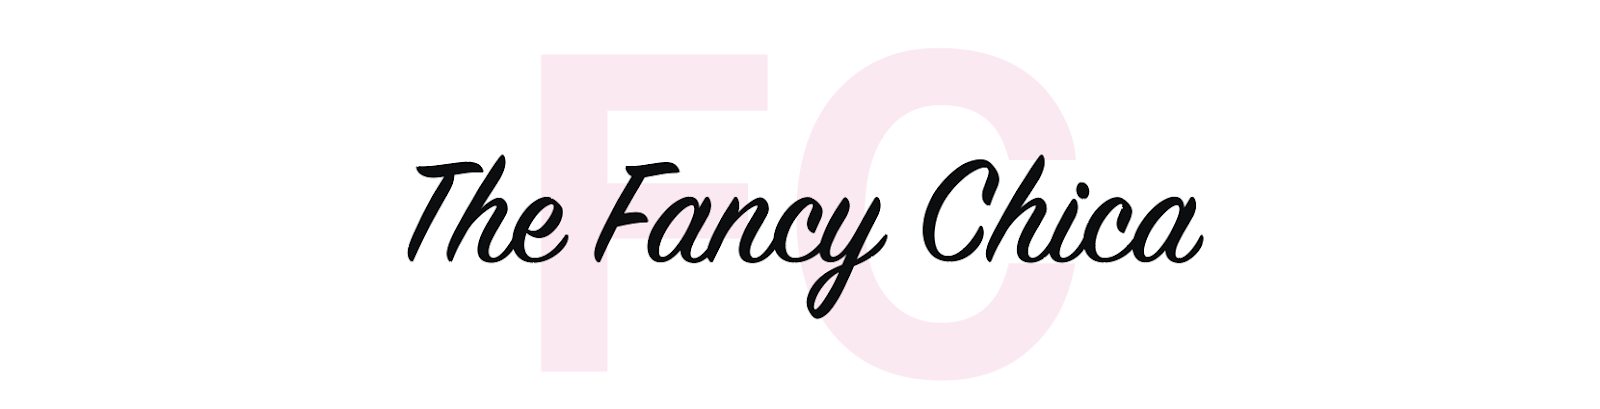 THE FANCY CHICA